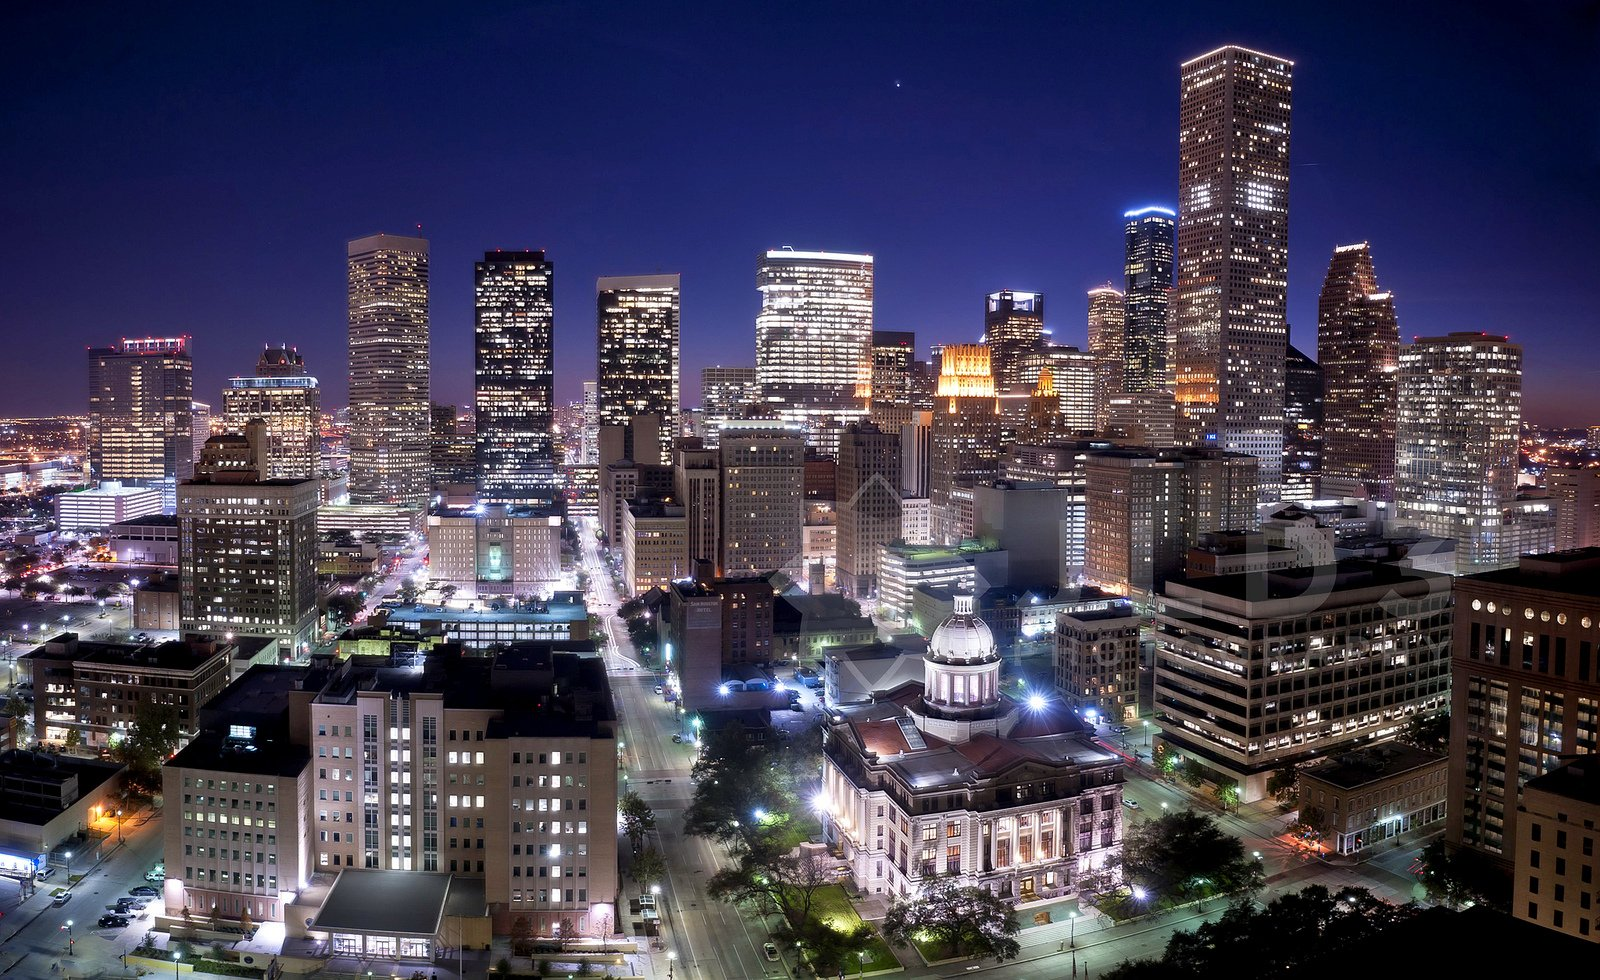 houston architecture bridges cities city texas night towers buildings usa downtown offices storehouses stores wallpaper 1600x980 480312 wallpaperup buildings usa downtown offices storehouses stores wallpaper